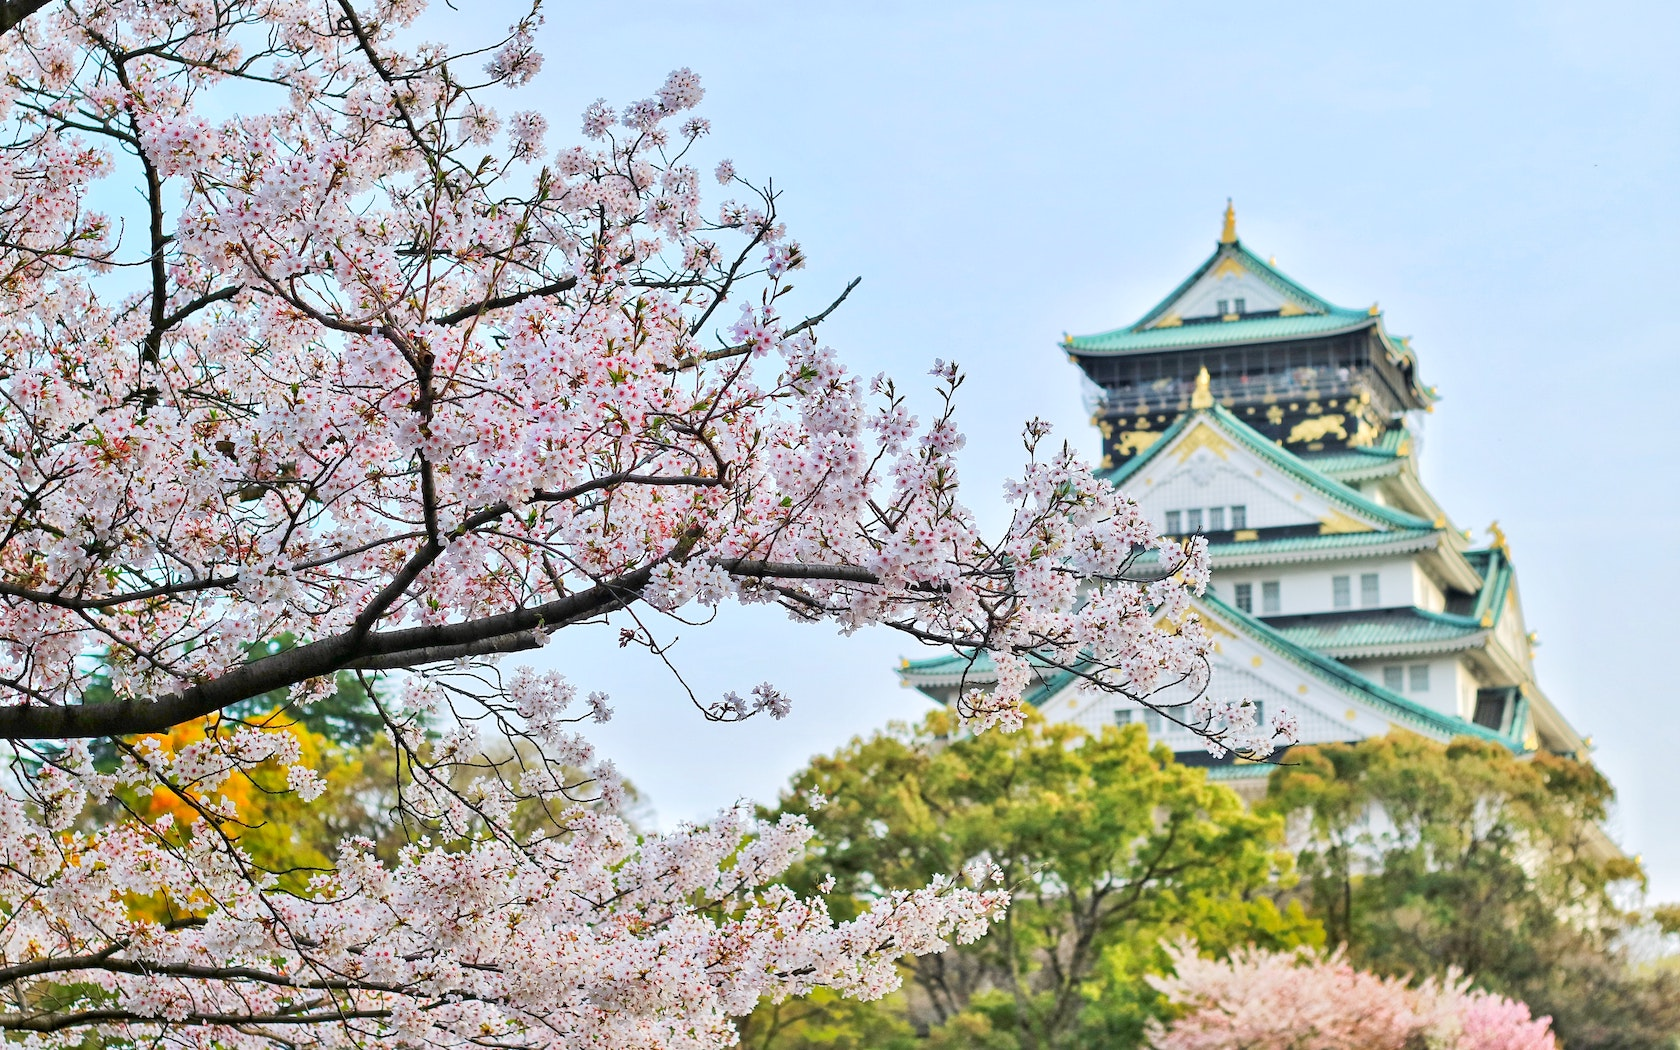 b52208c05caba The annual blooming of the sakura flower, otherwise known as the cherry  blossom, is a big deal in Japan. To help you catch a glimpse of these  flowers, ...